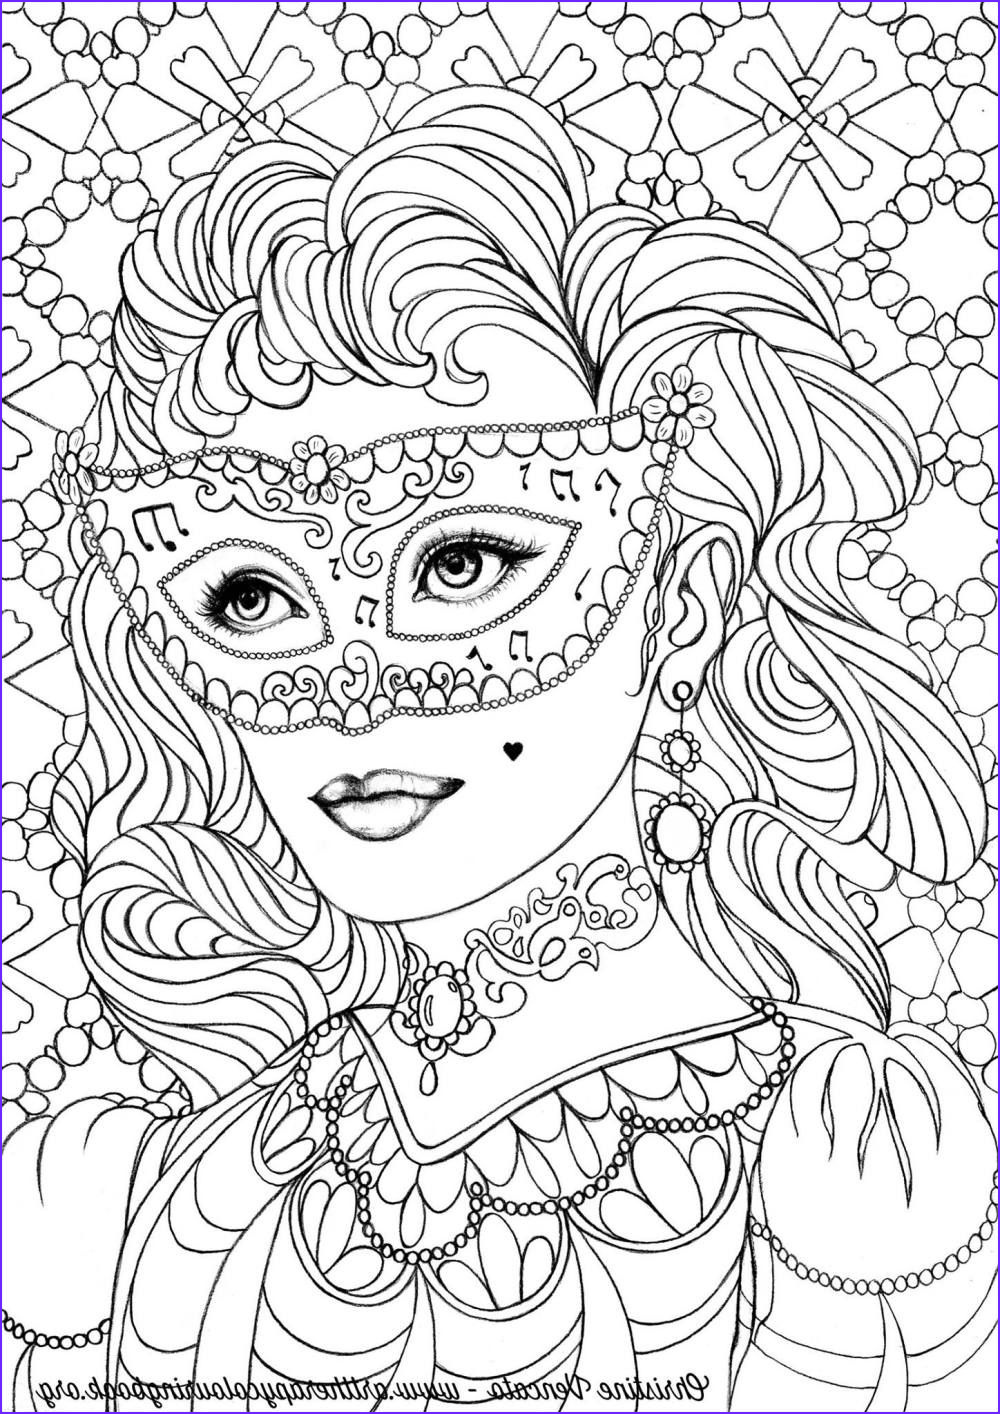 Coloring therapy for Adults New Collection Free Coloring Page From Adult Coloring Worldwide Art by